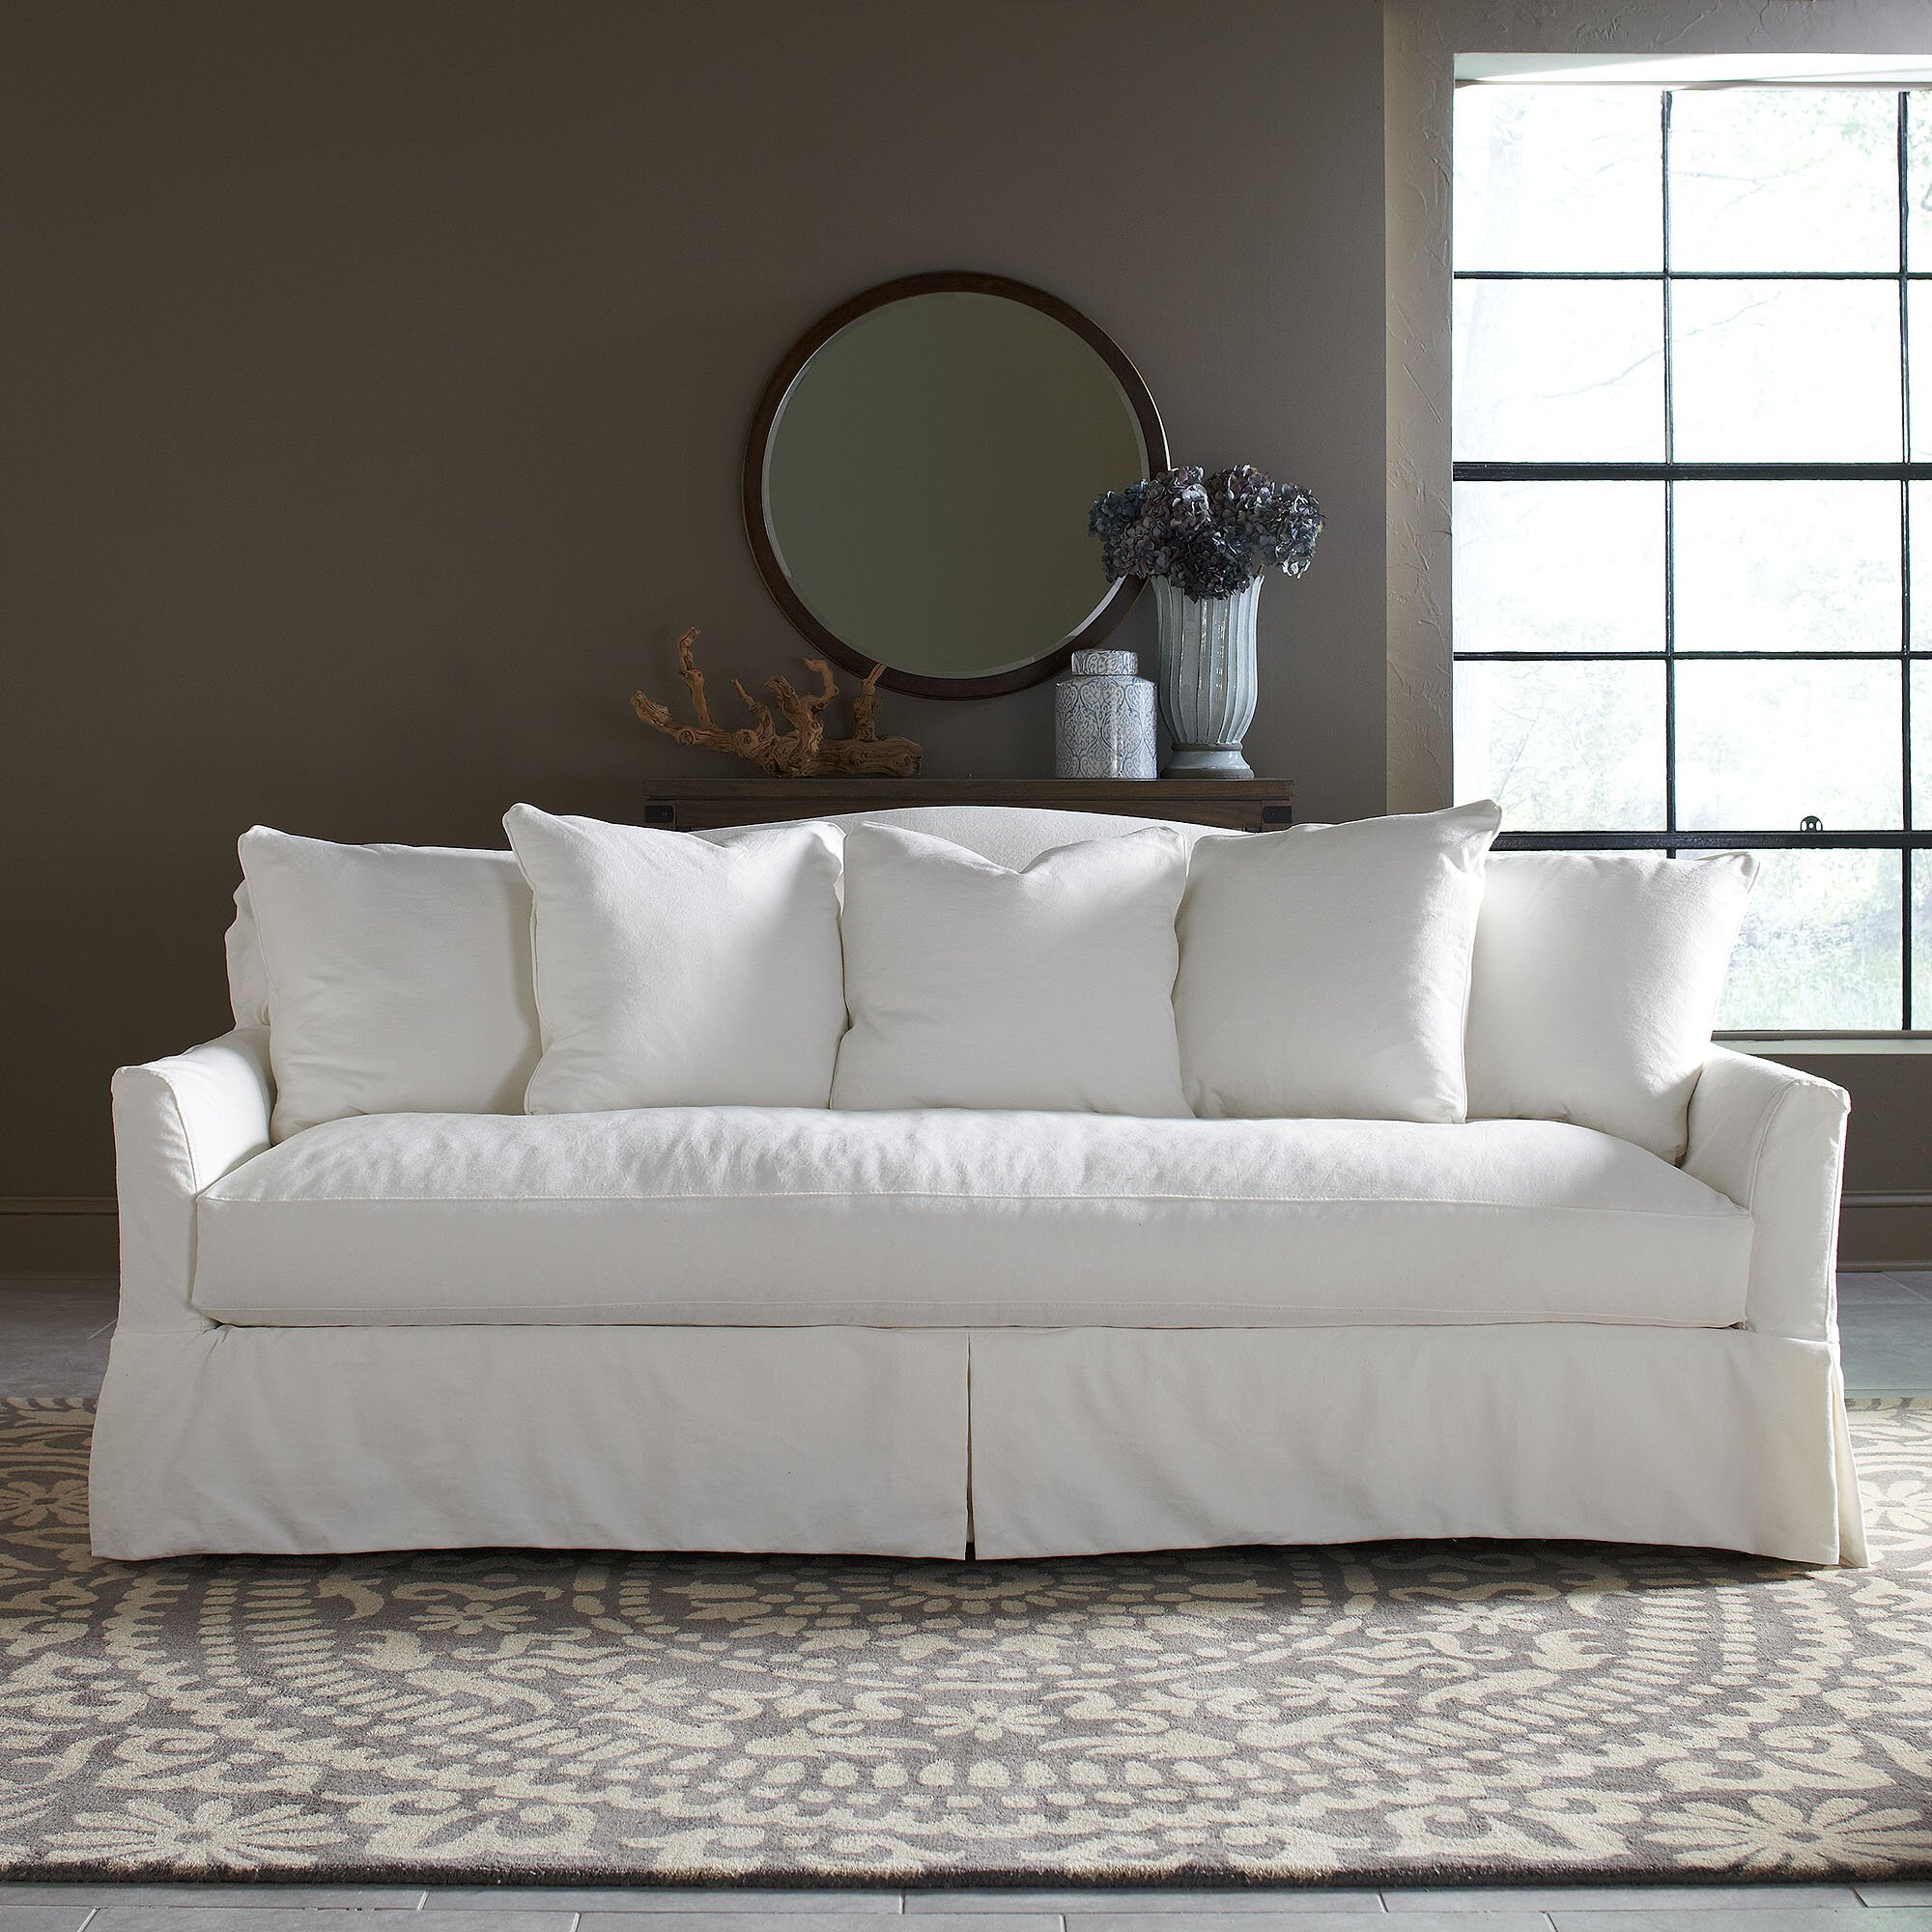 Birch Lane Fairchild Slipcovered Sofa & Reviews | Wayfair